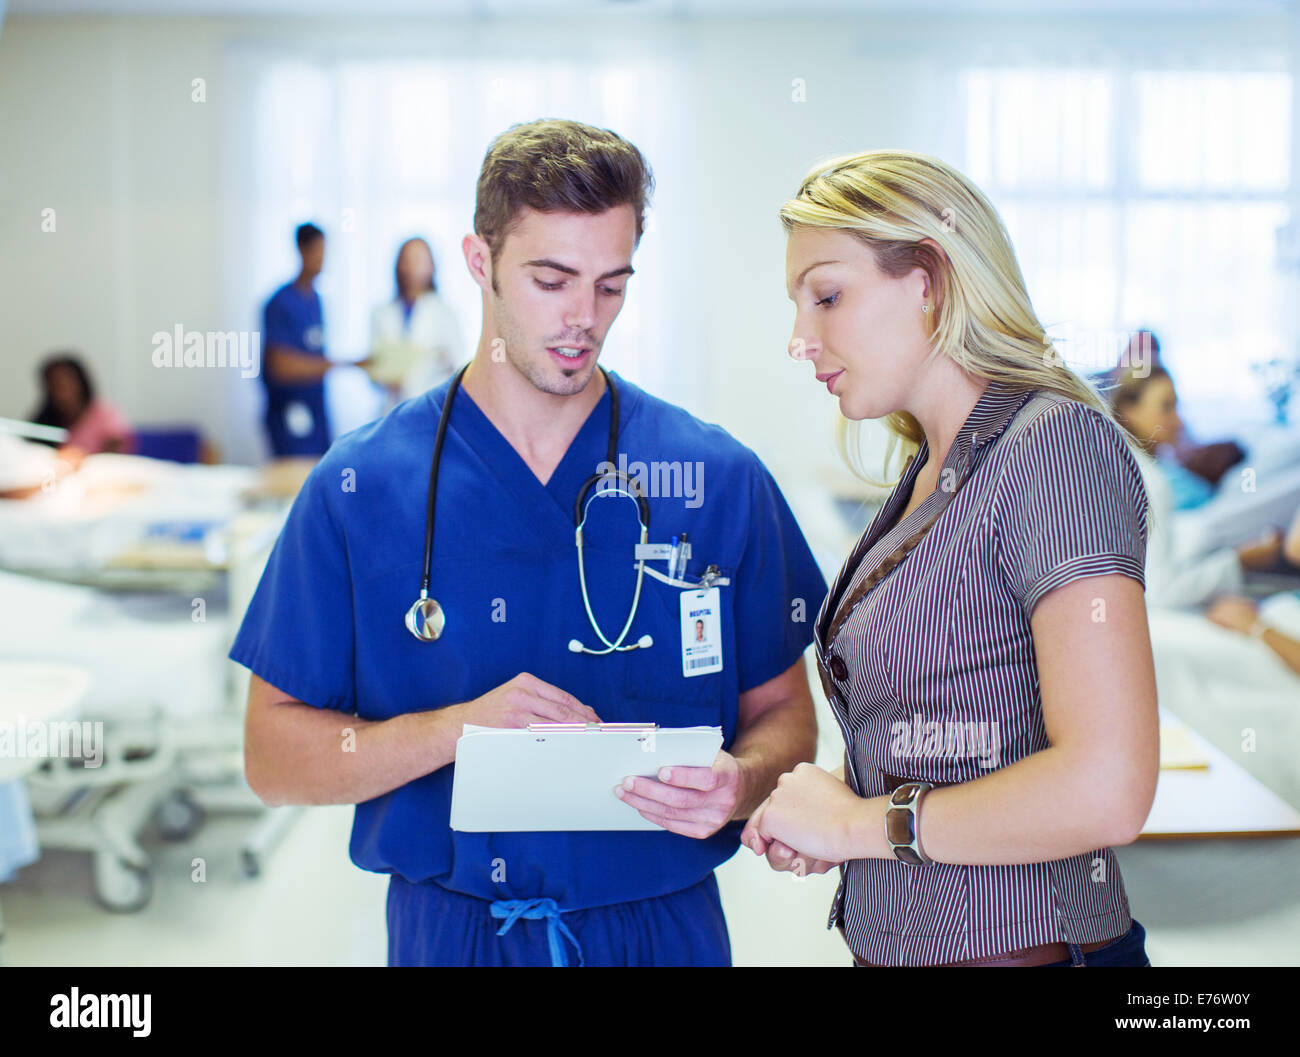 Nurse and patient reading medical charts in hospital - Stock Image